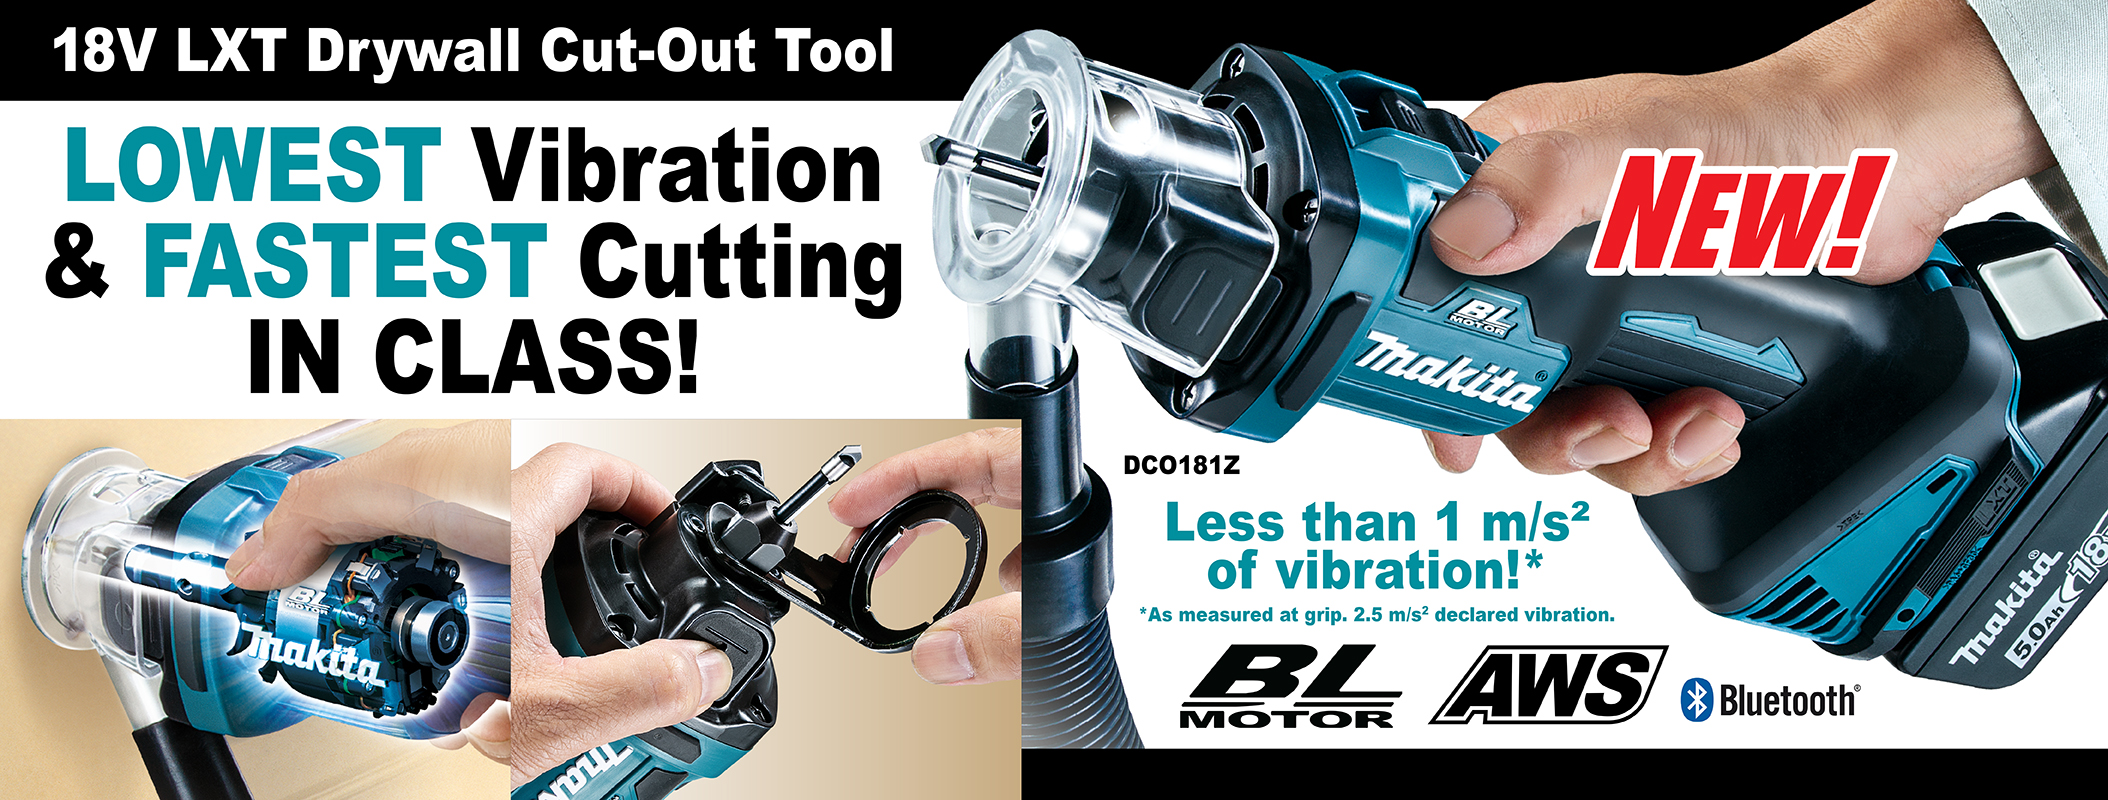 Cordless Drywall Cut Out Tool with Brushless Motor & AWS